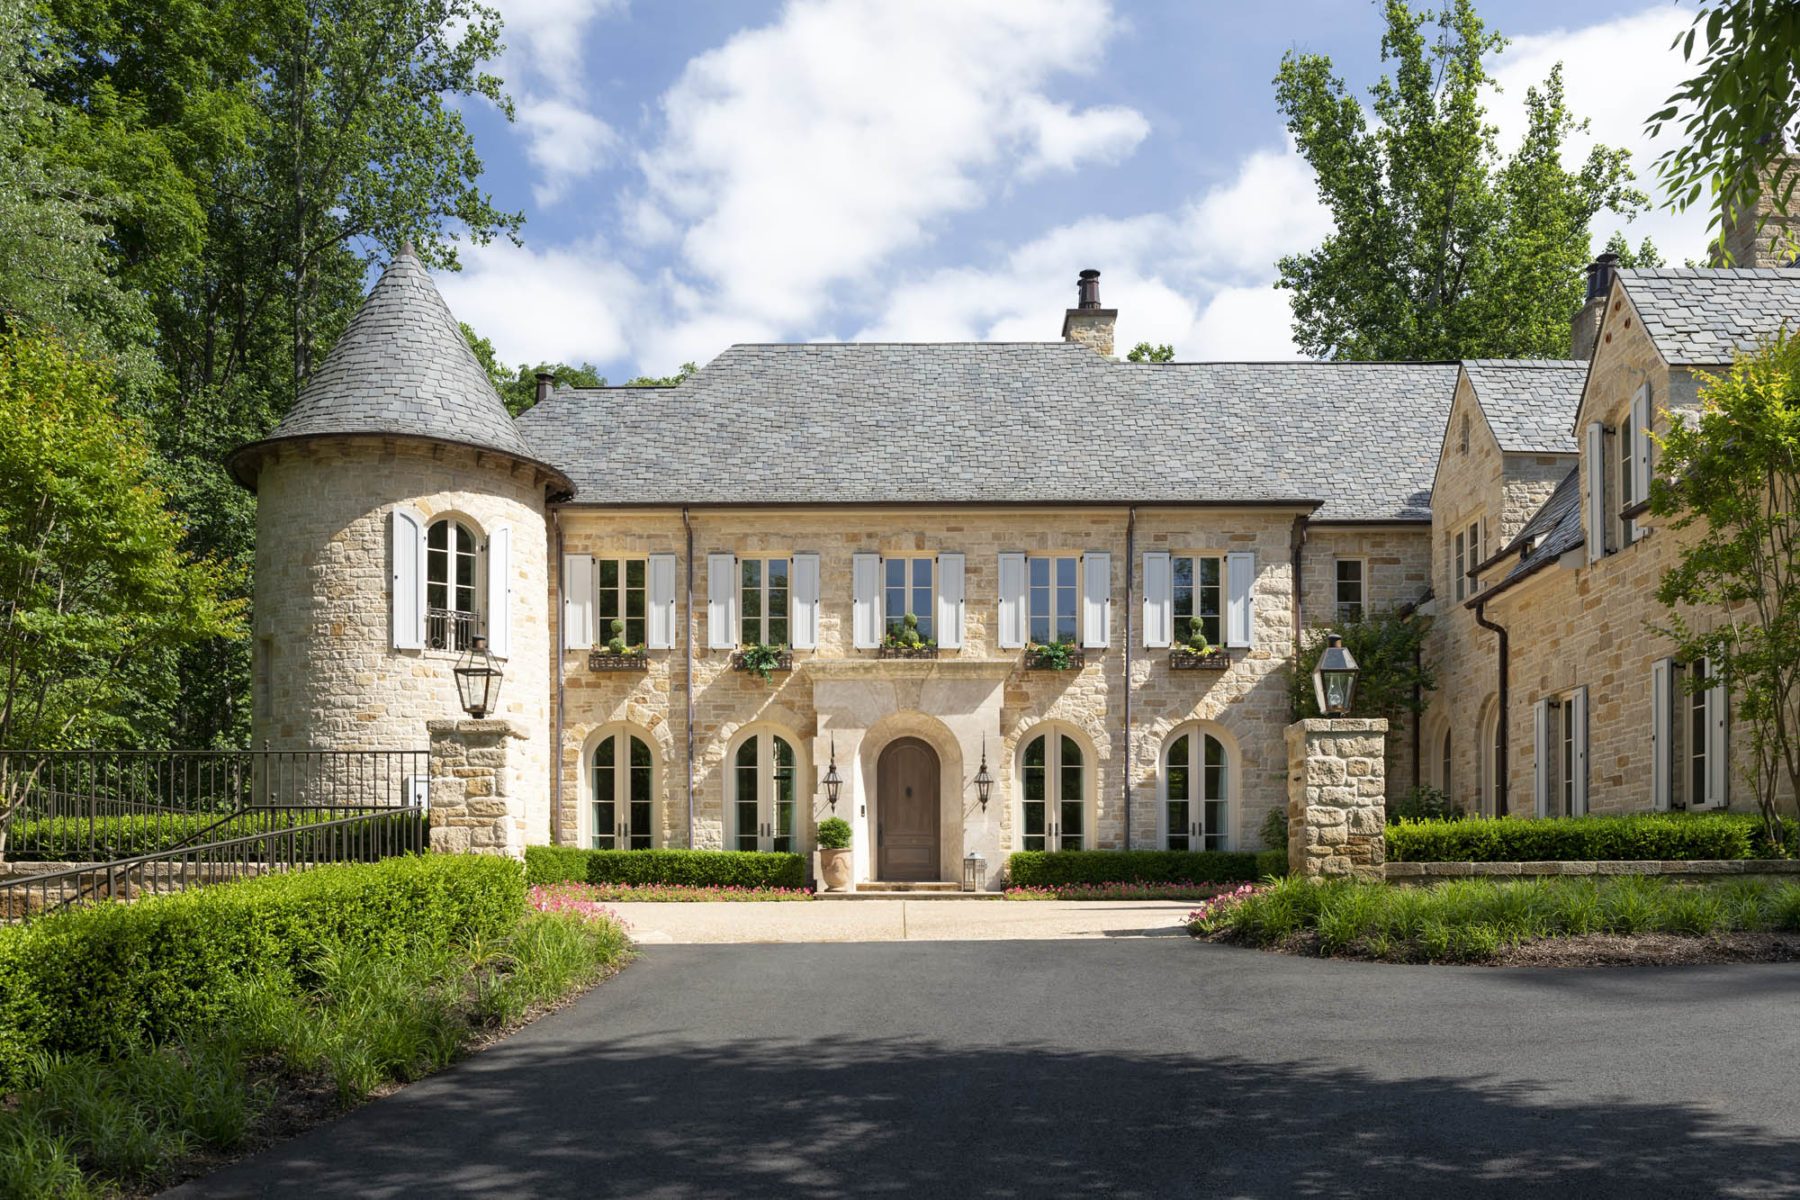 Harrison Design rough fieldstone exterior with pedimented cut limestone surround on front door and Provençal blue shutters